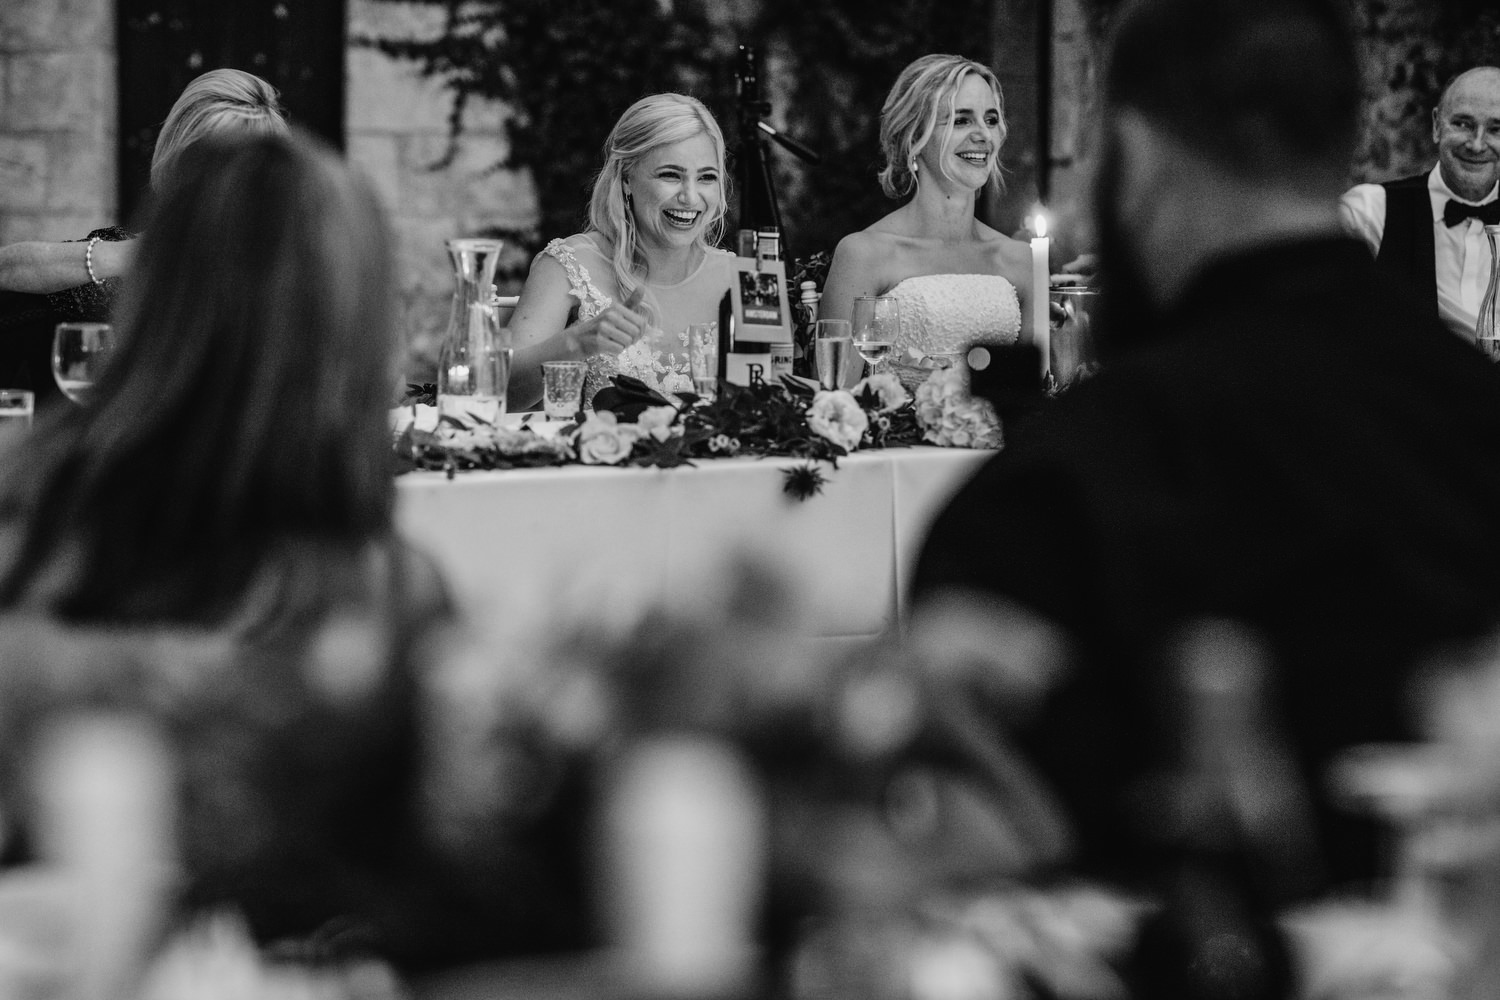 Both brides laughing during speech